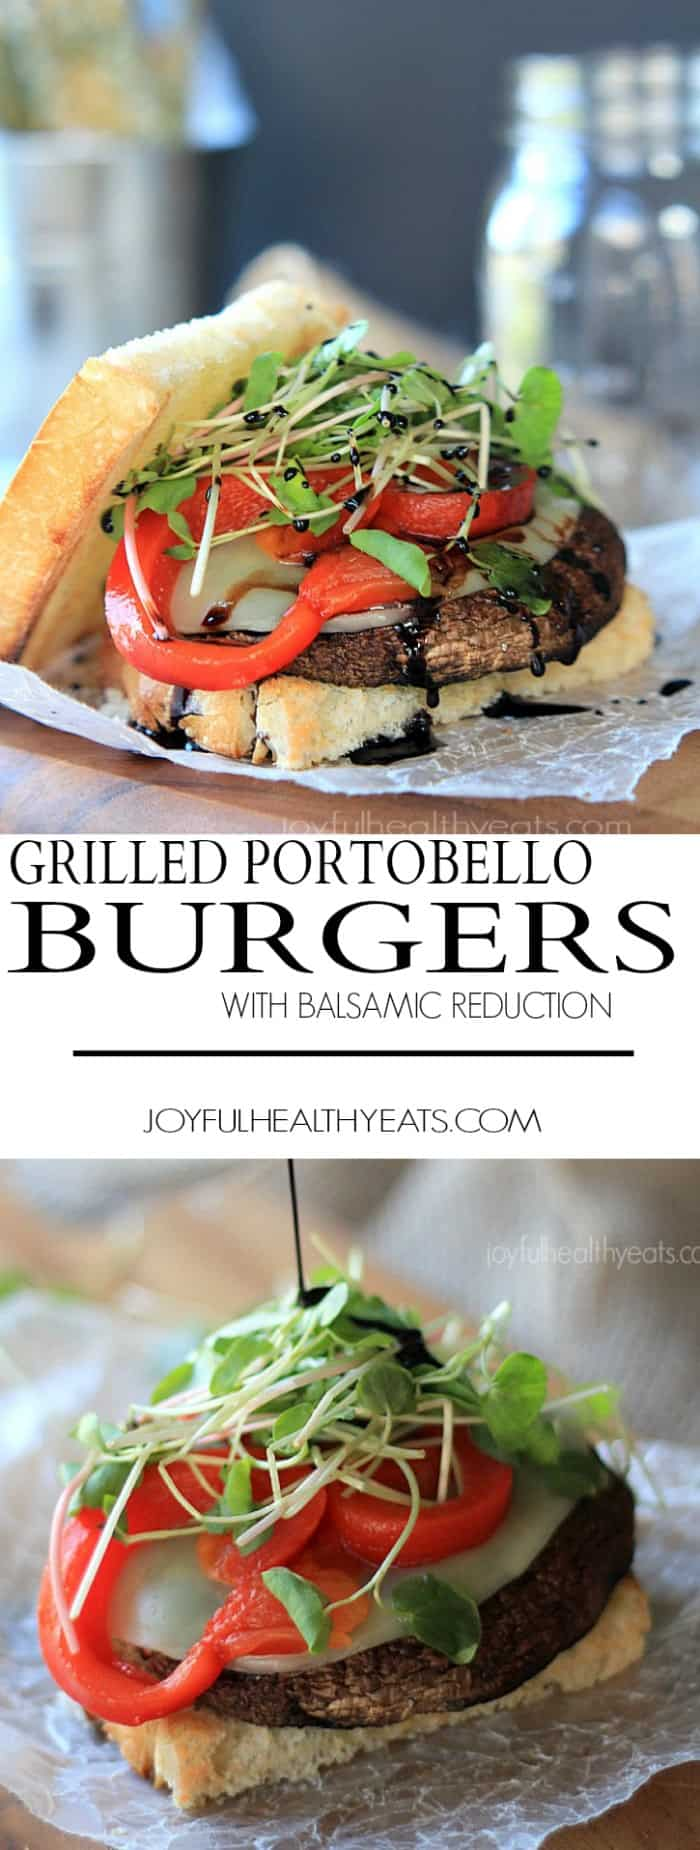 "Seriously the best ""faux burger"" I have ever had! Grilled Portobello Burgers topped with provolone cheese, roasted red peppers, sprouts, and Balsamic Reduction 